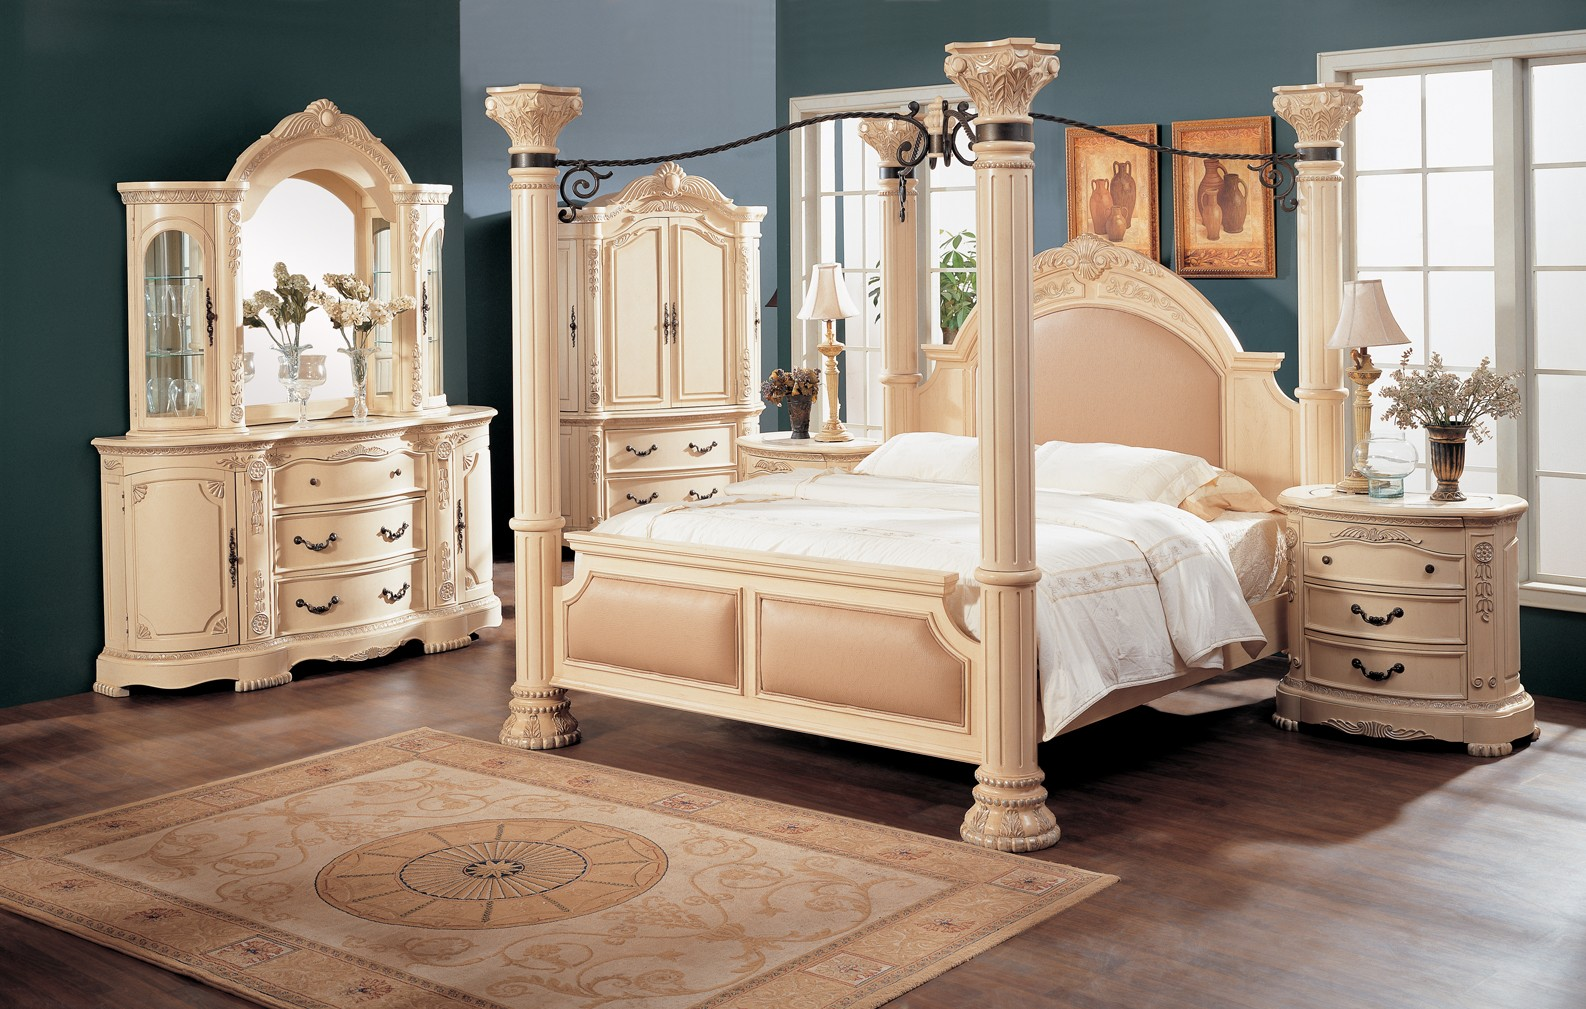 traditional-bedroom-furniture-as-painted-bedroom-furniture-to-the-inspiration